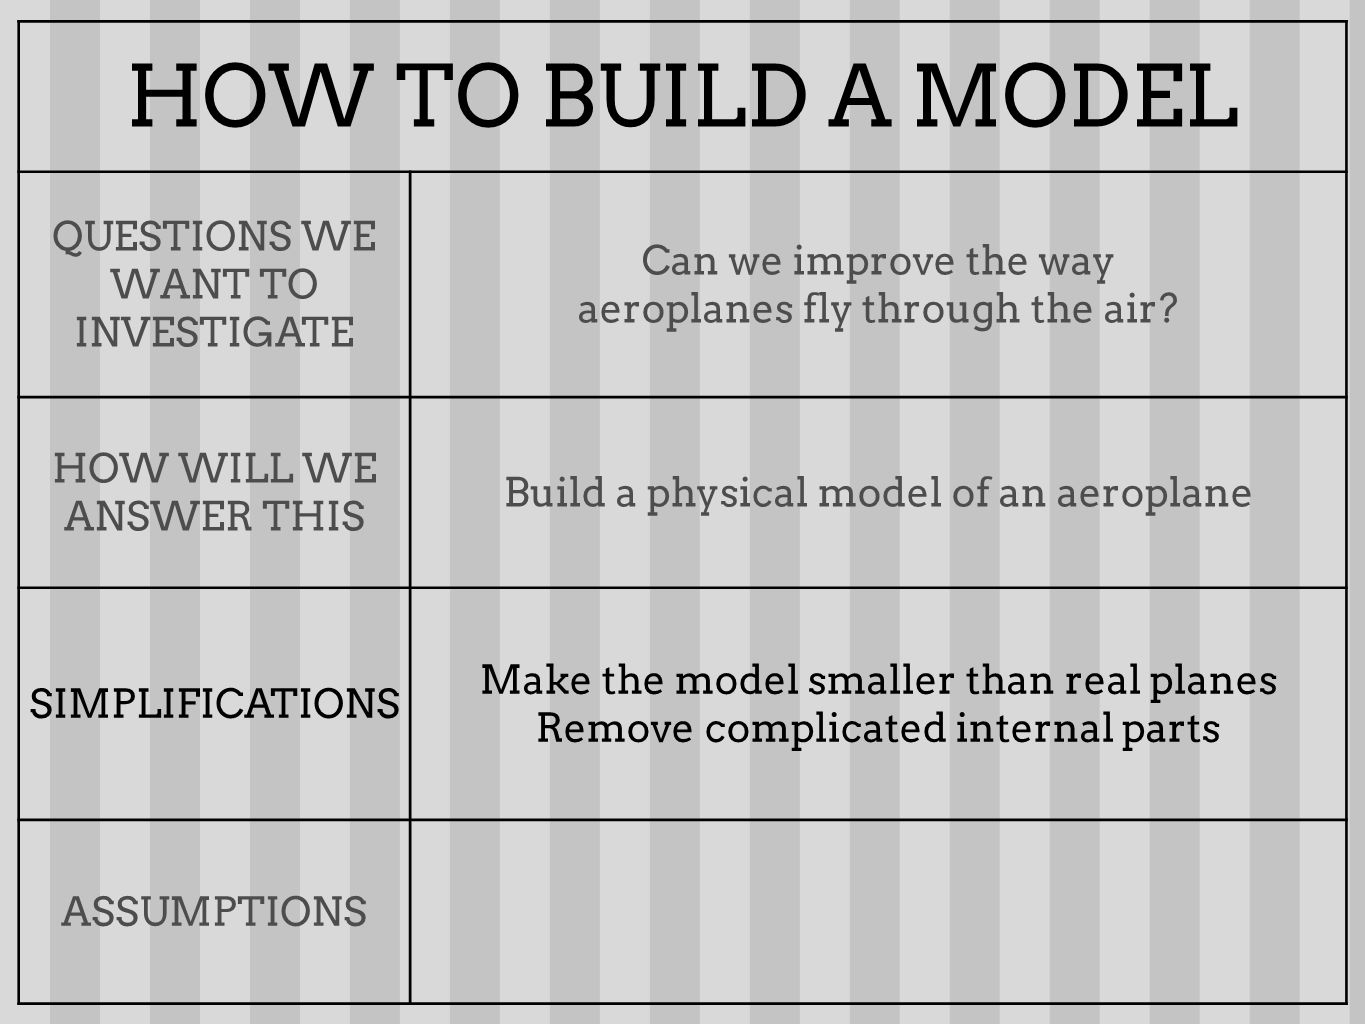 HOW TO BUILD A MODEL QUESTIONS WE WANT TO INVESTIGATE Can we improve the way aeroplanes fly through the air? HOW WILL WE ANSWER THIS Build a physical